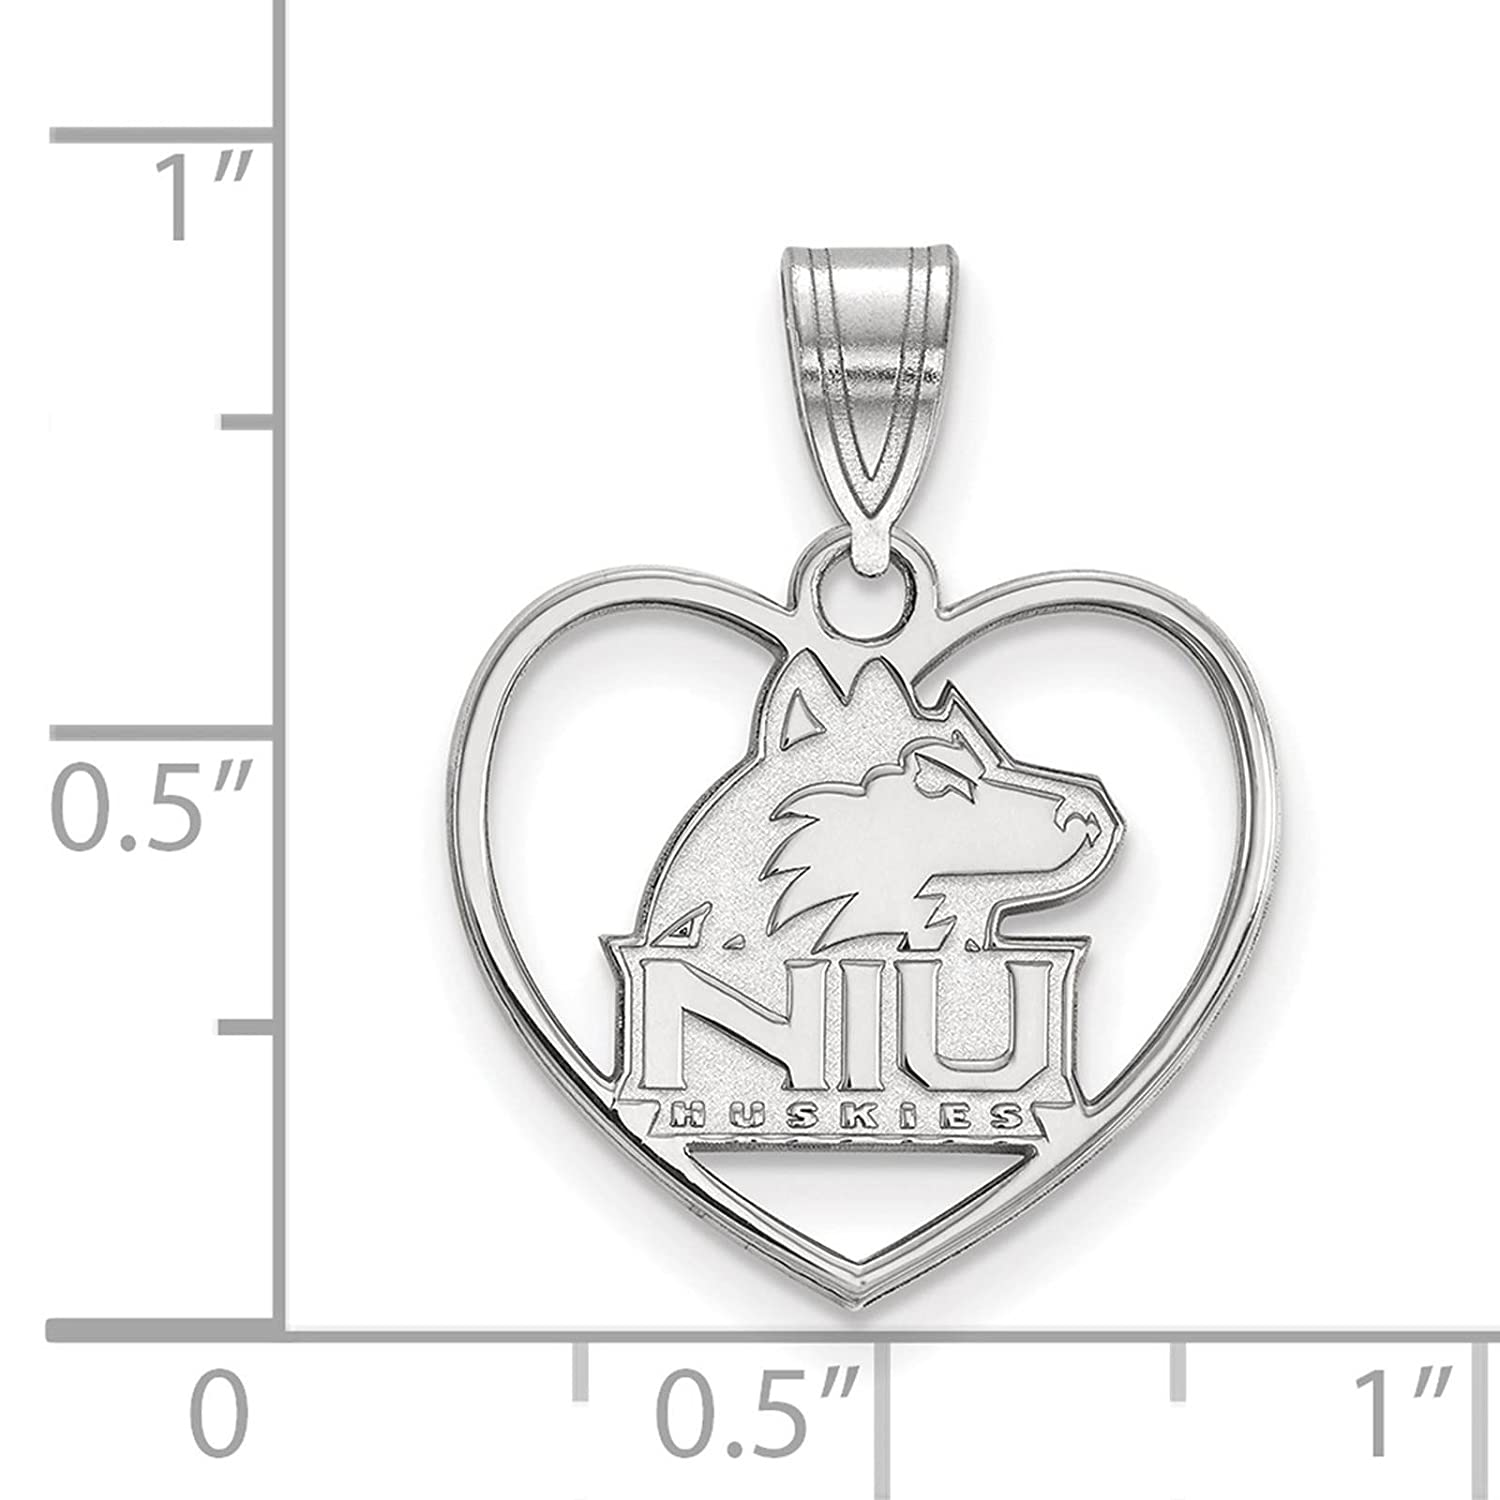 925 Sterling Silver Rhodium-plated Laser-cut Northern Illinois University Heart Pendant